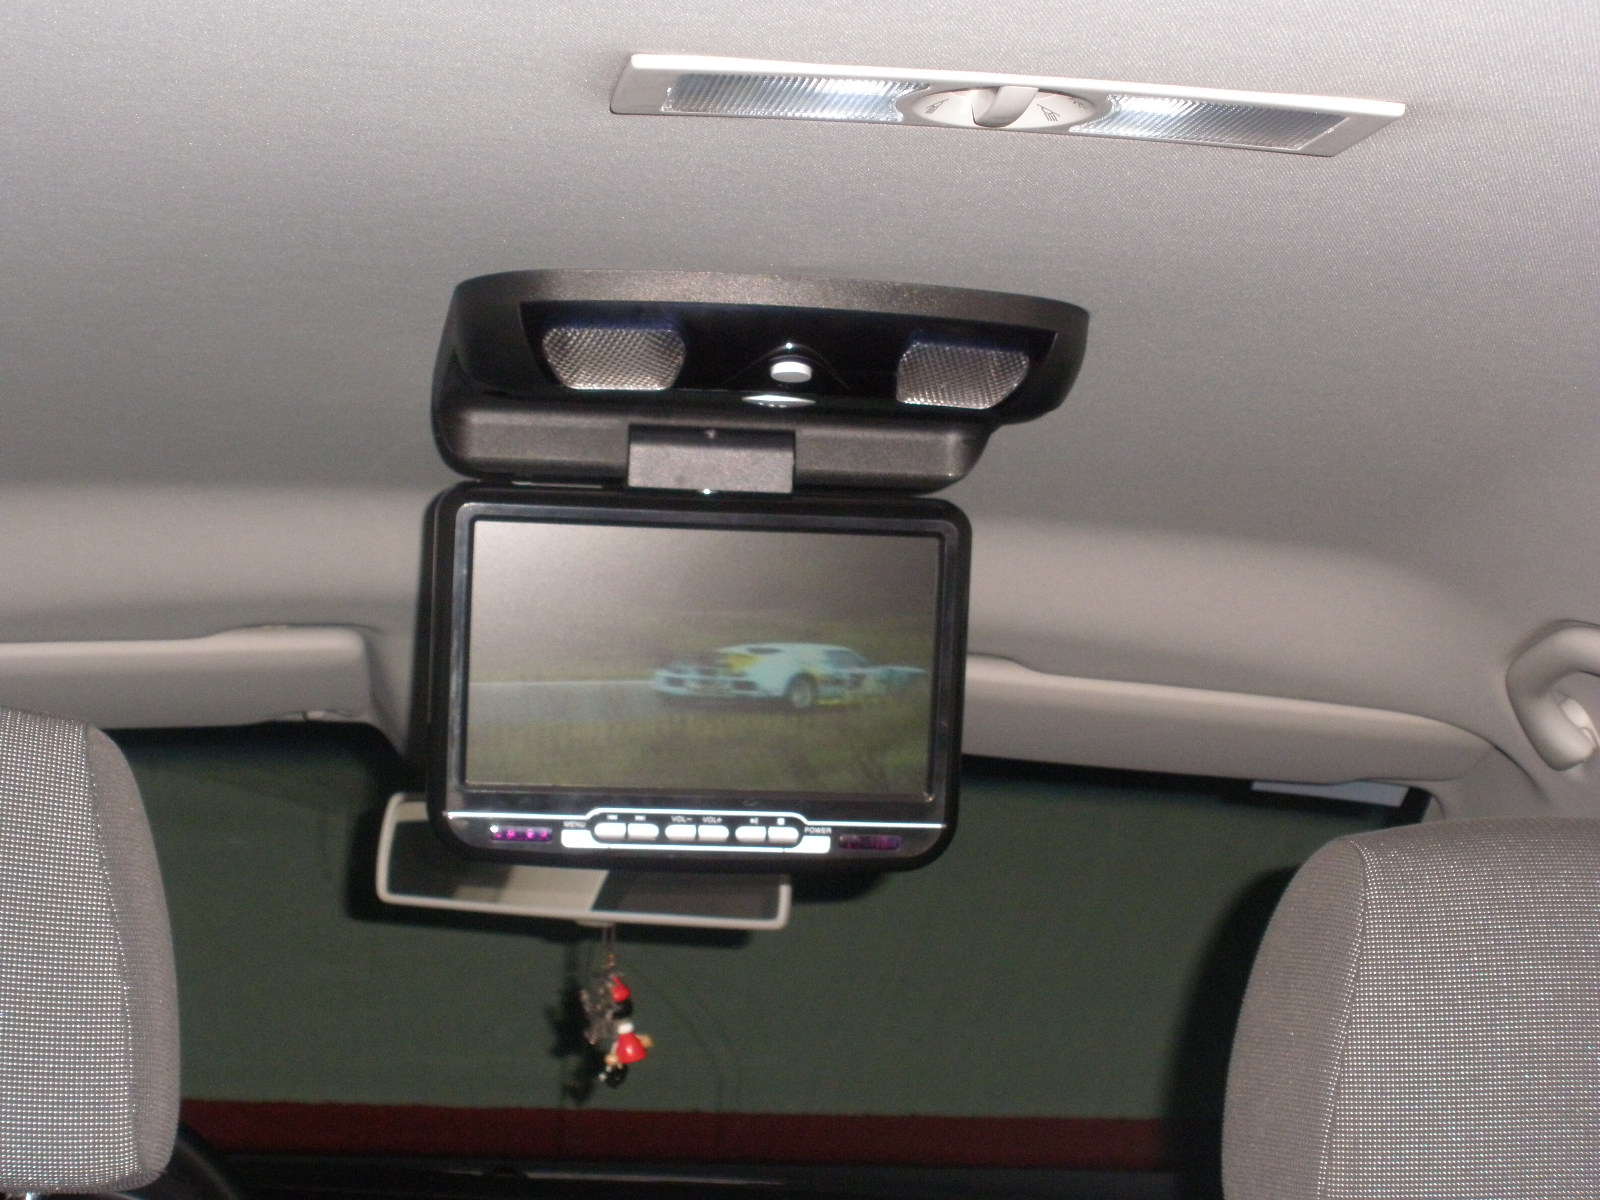 Instalar Manos Libres Coche Informatic In Home Car Audio Instalacion Pantalla Dvd